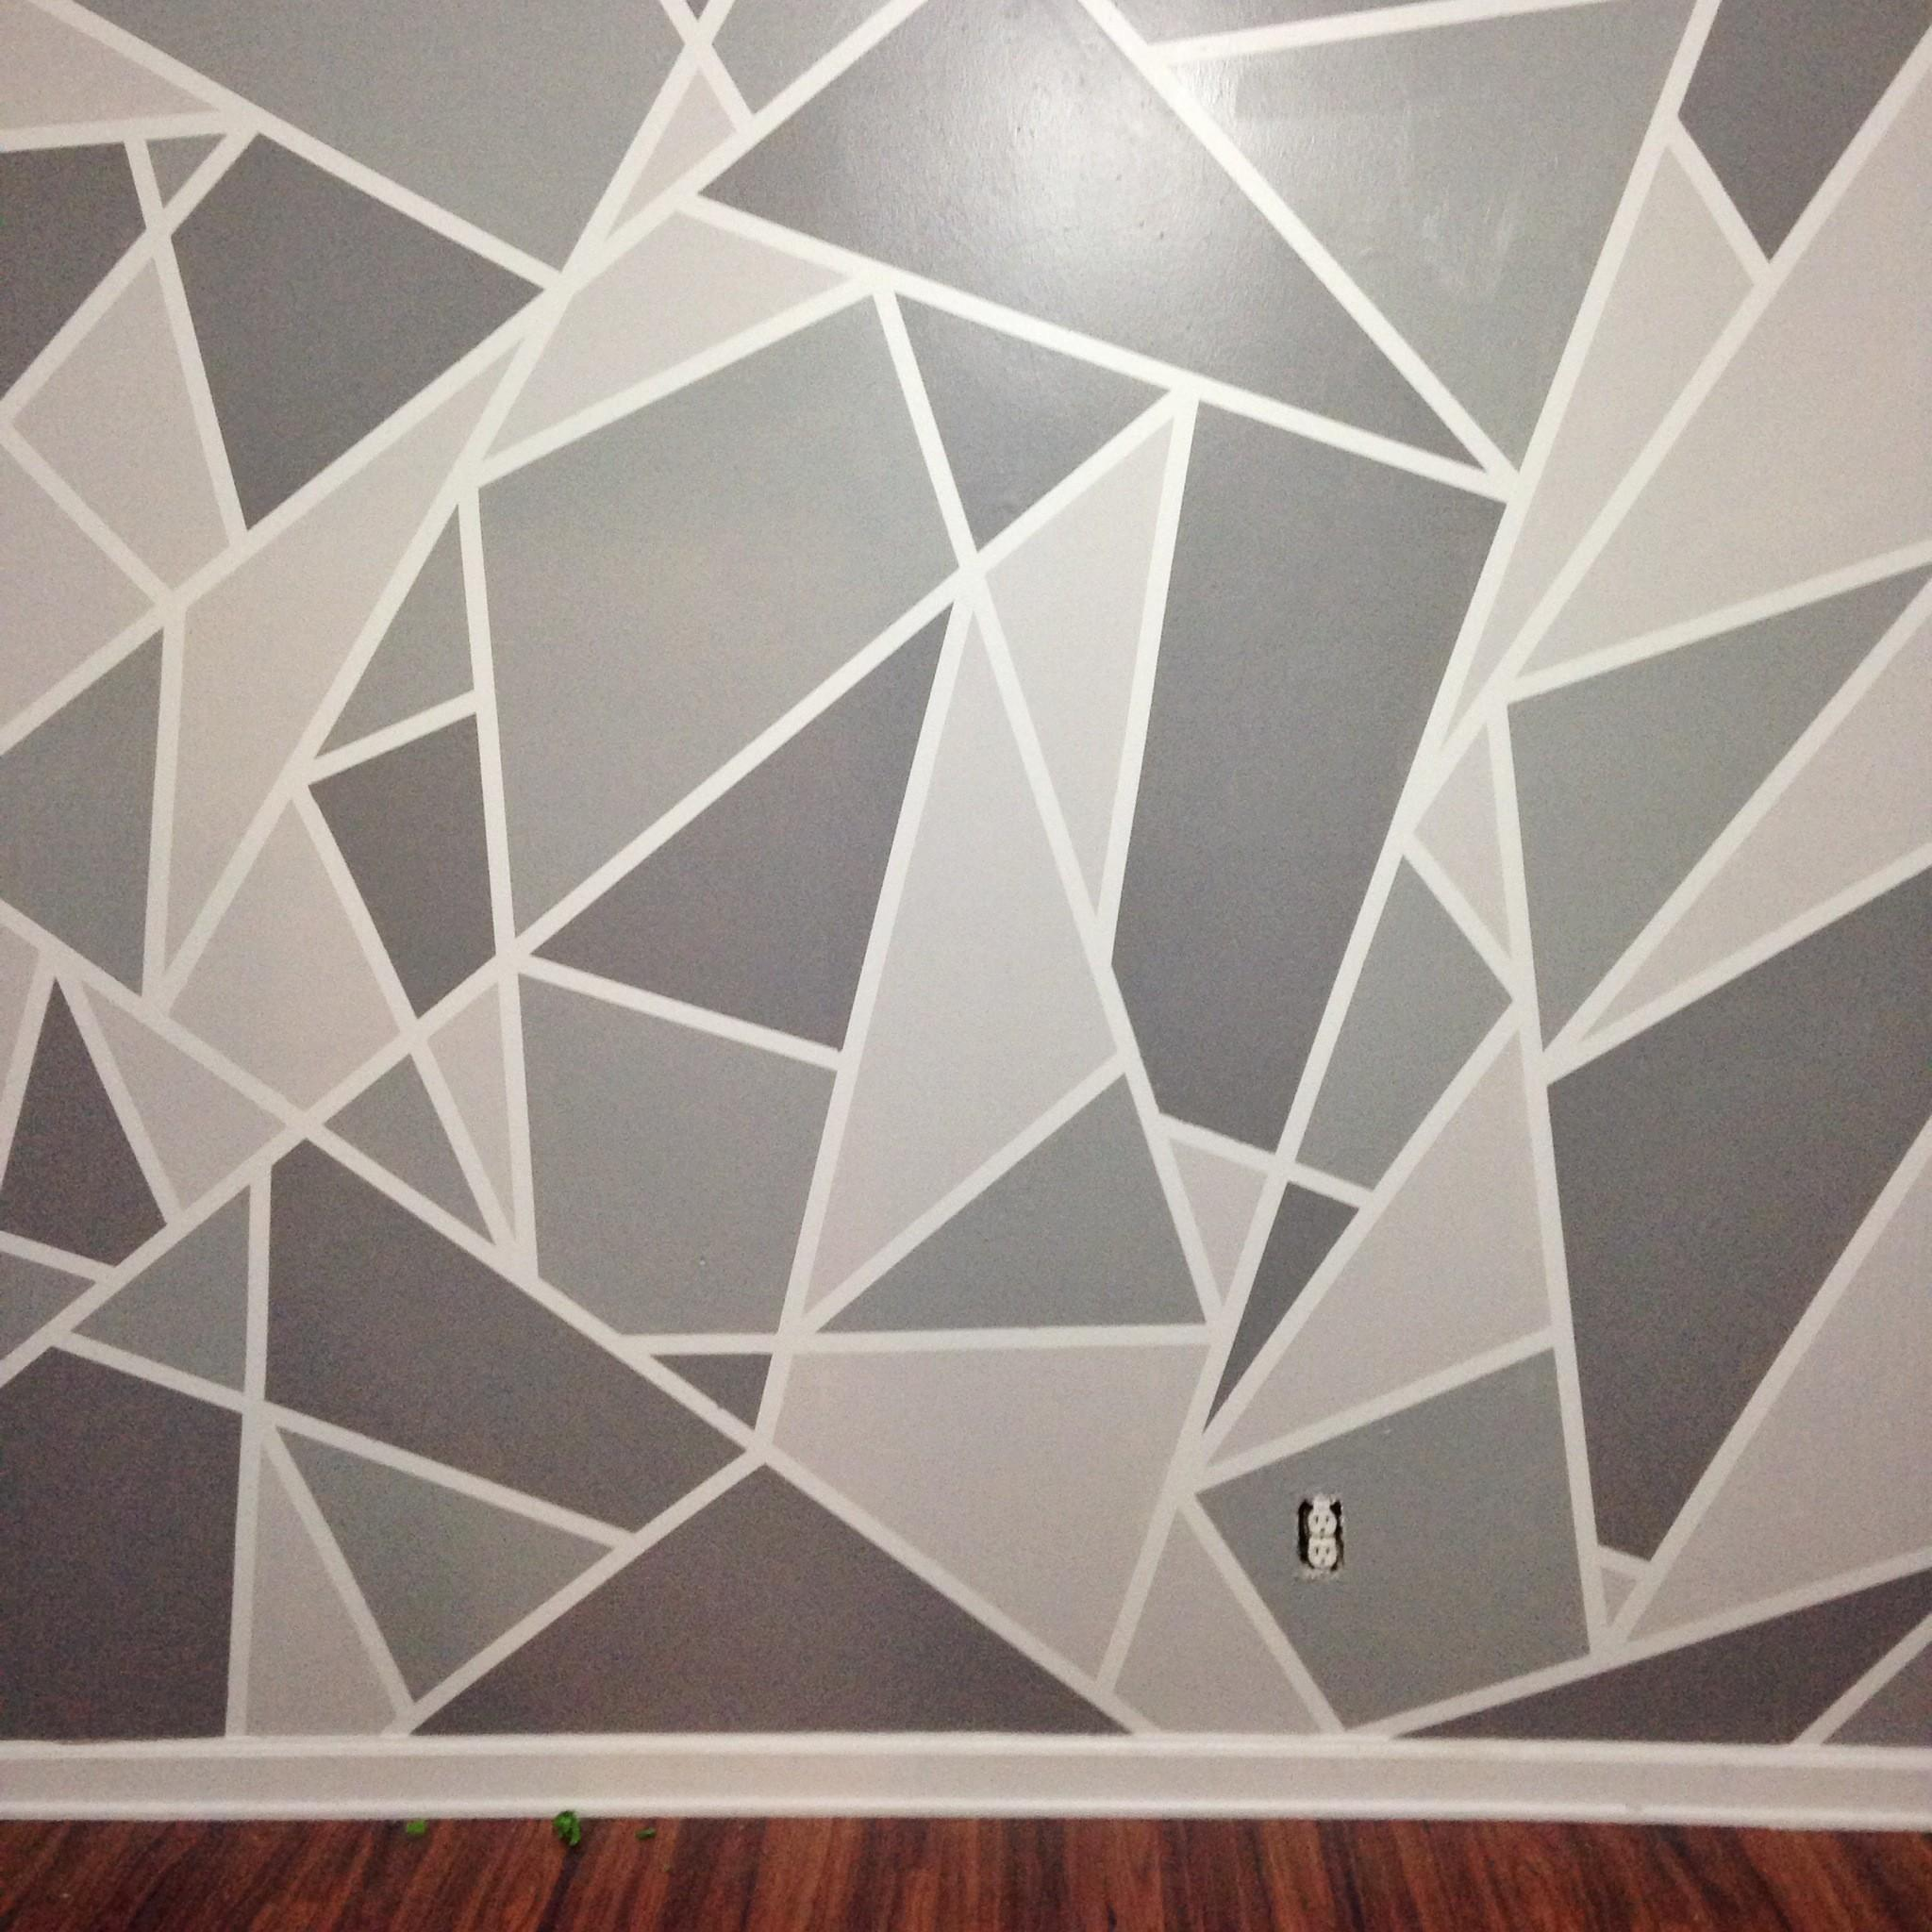 Diy Faux Accent Wall Statement